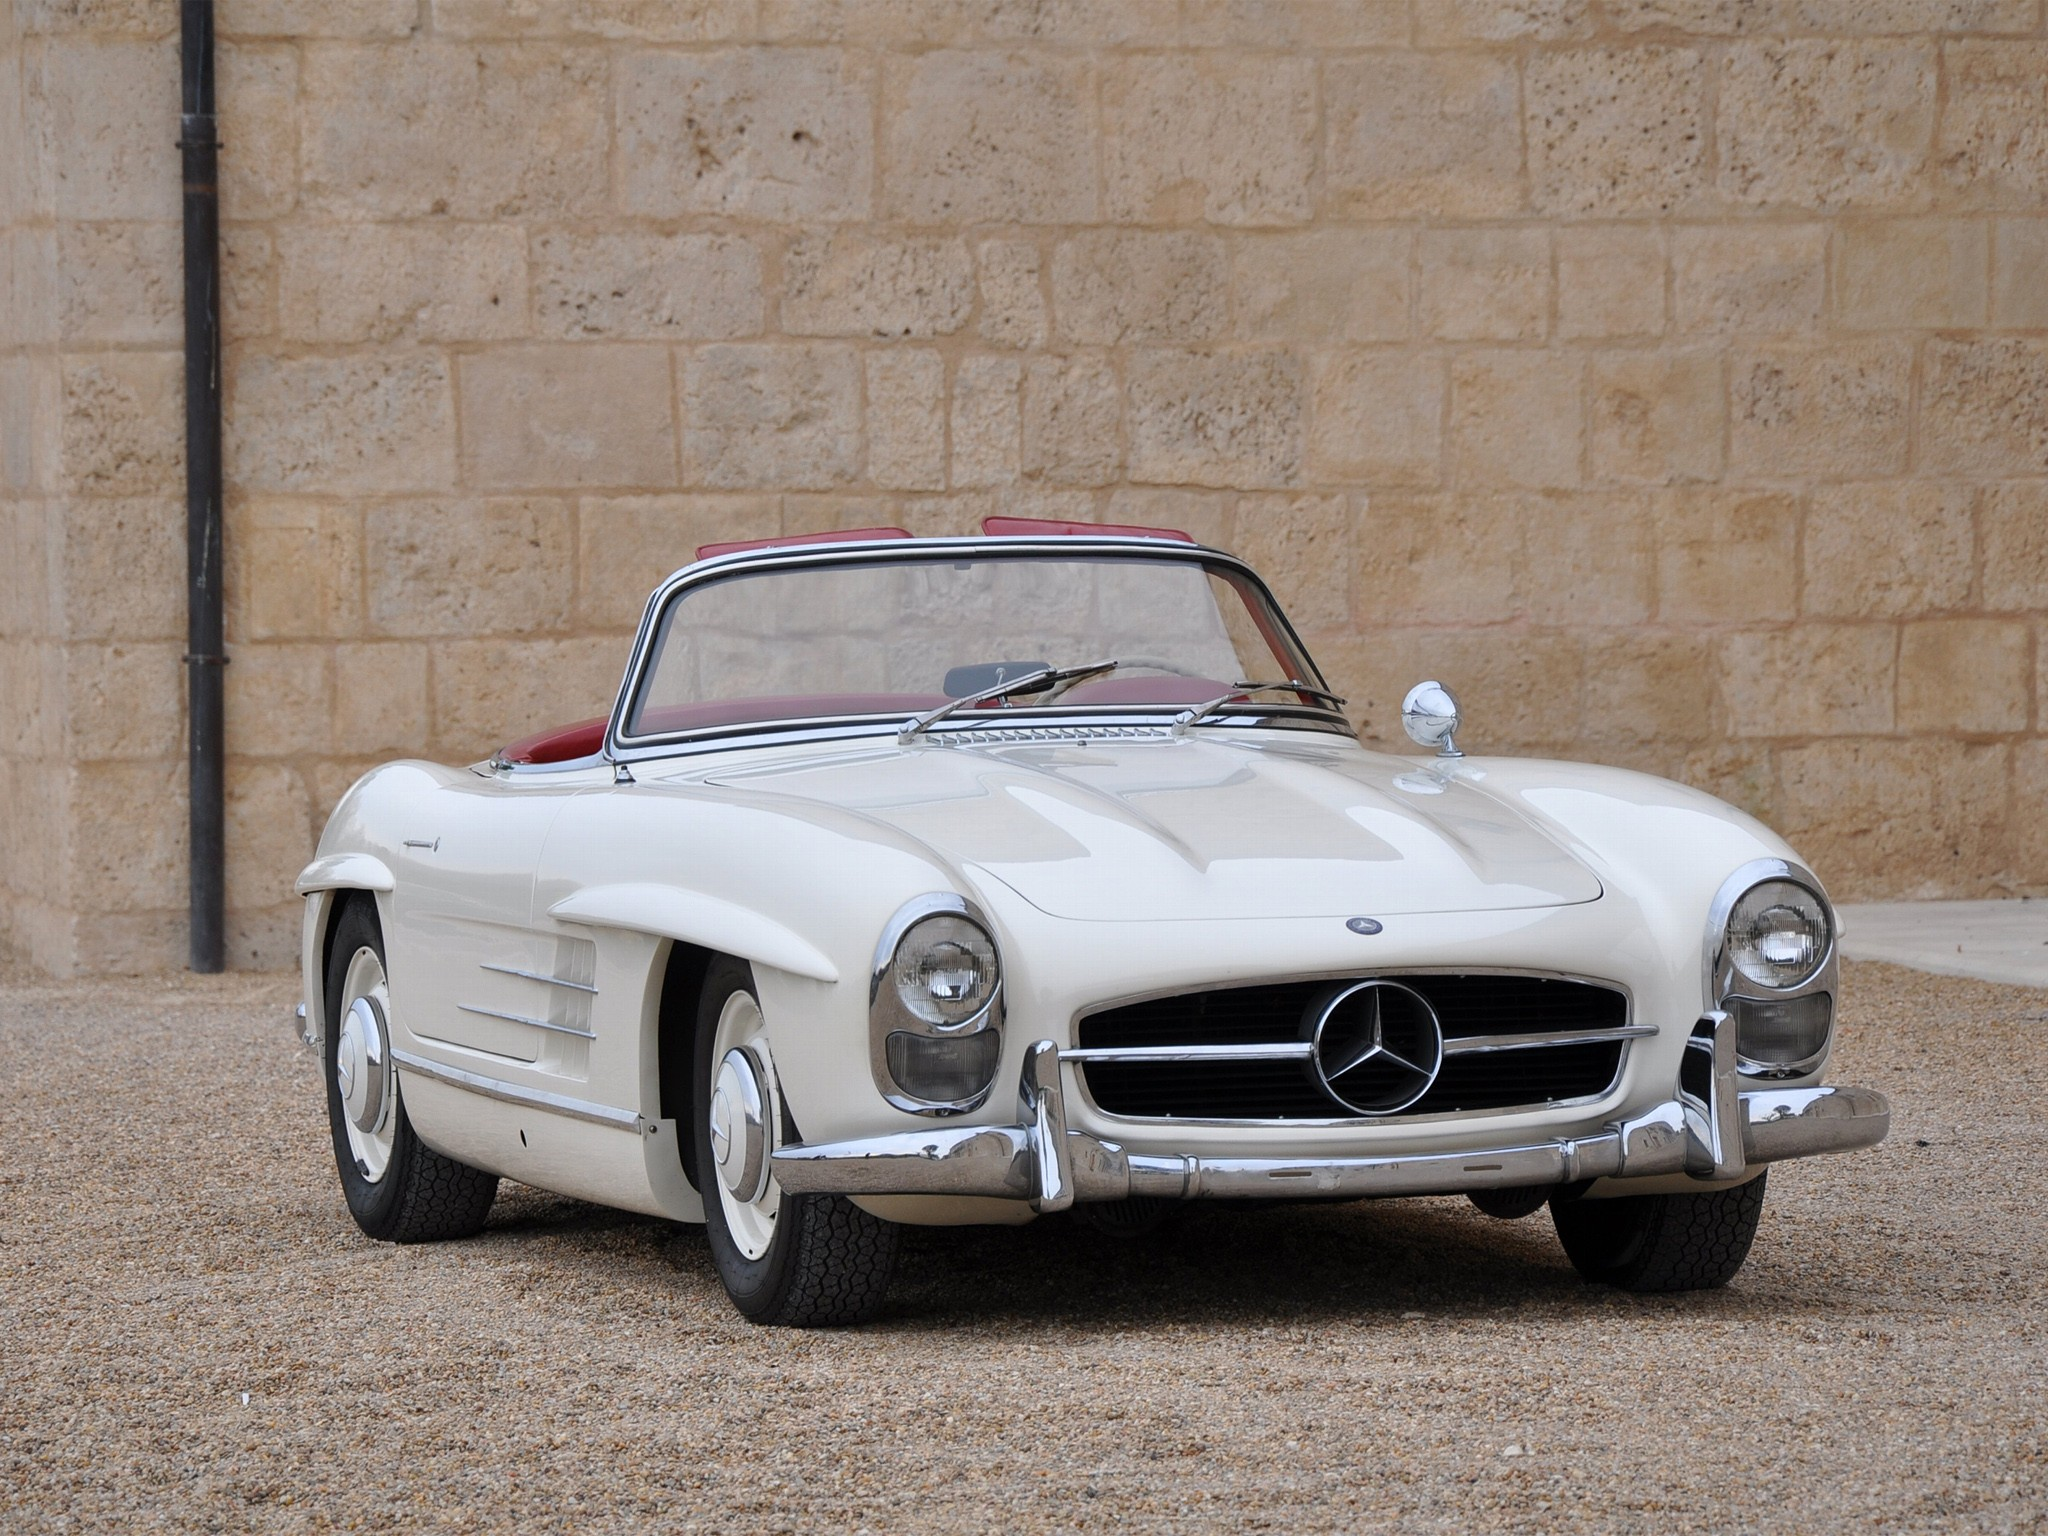 mercedes benz 300 sl roadster hardtop w198 specs photos 1958 1959 1960 1961 1962 1963. Black Bedroom Furniture Sets. Home Design Ideas